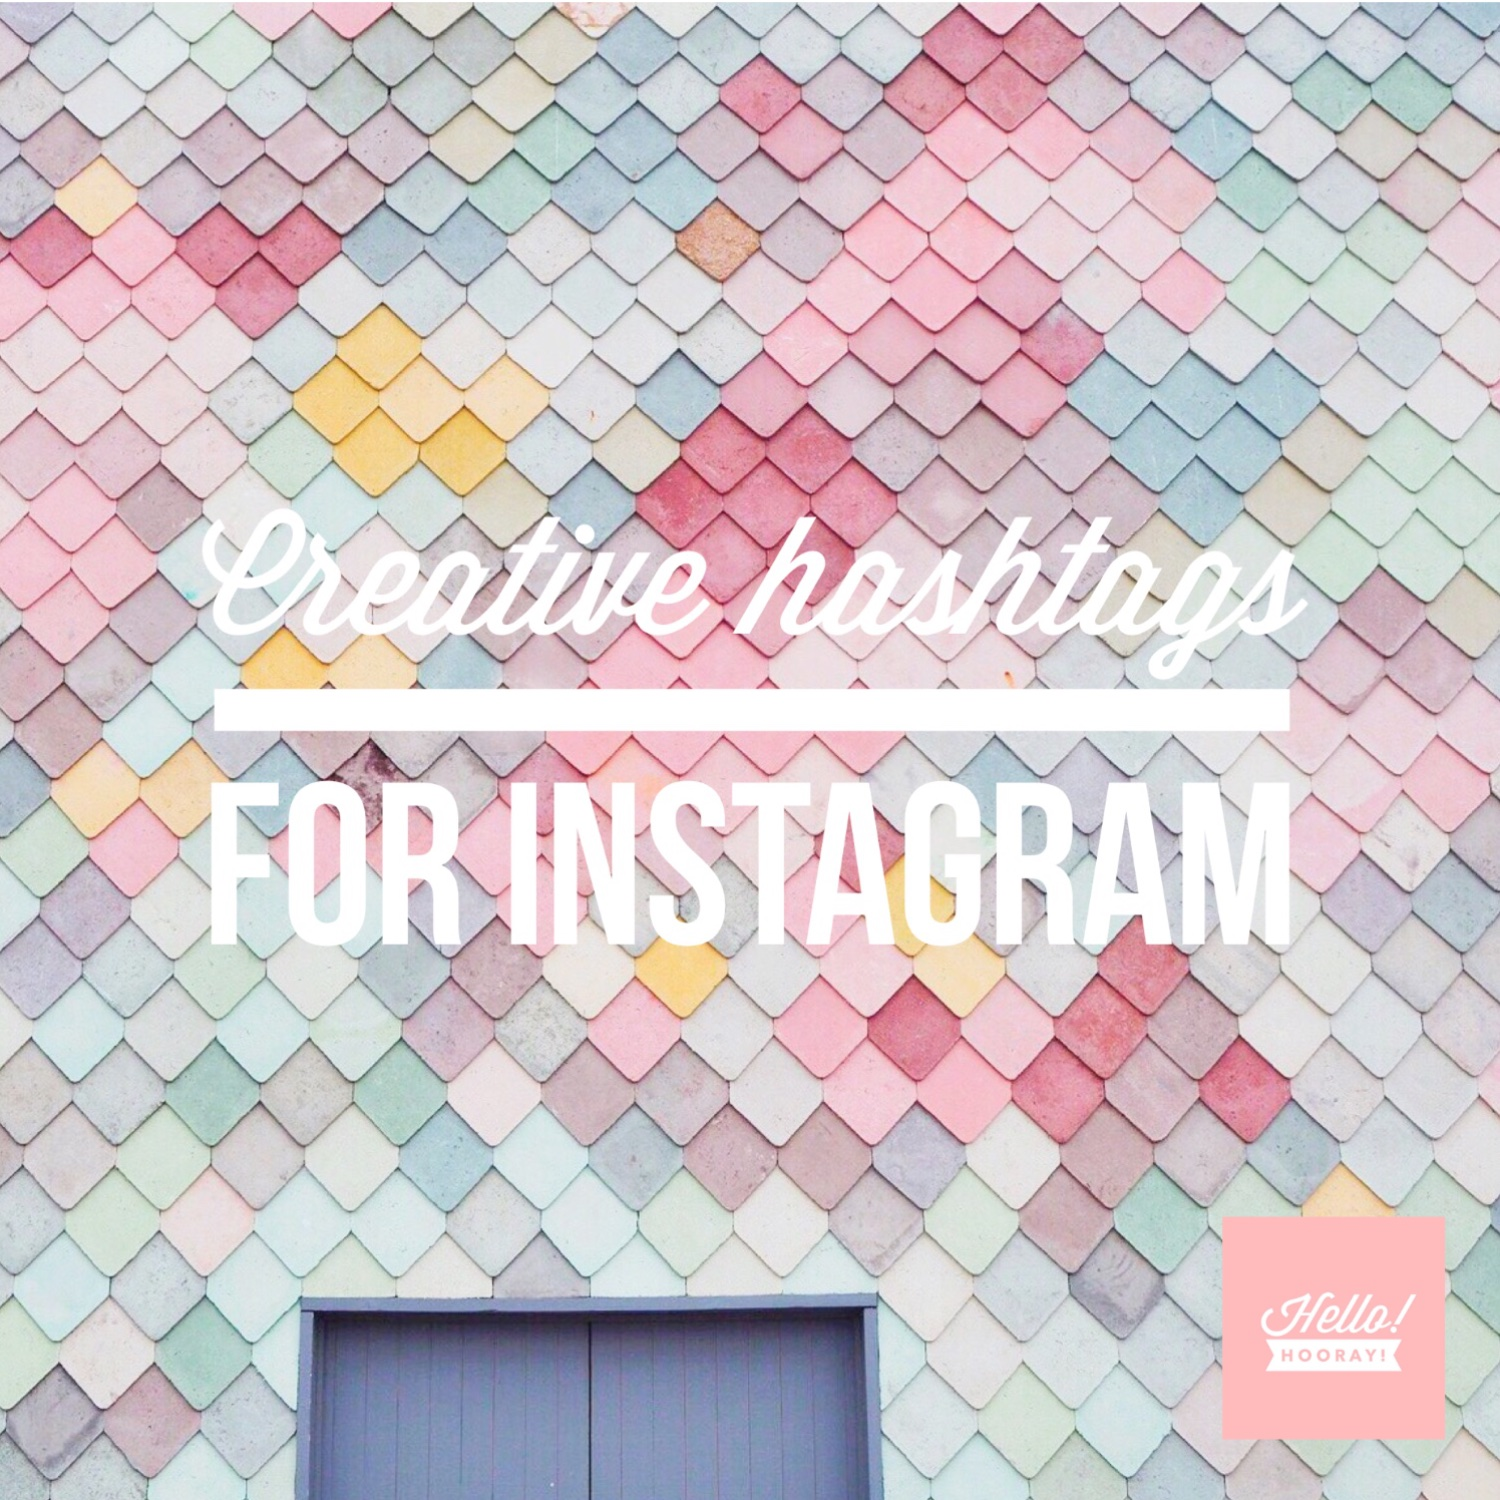 Creative hashtags for Instagram | Hello! Hooray!